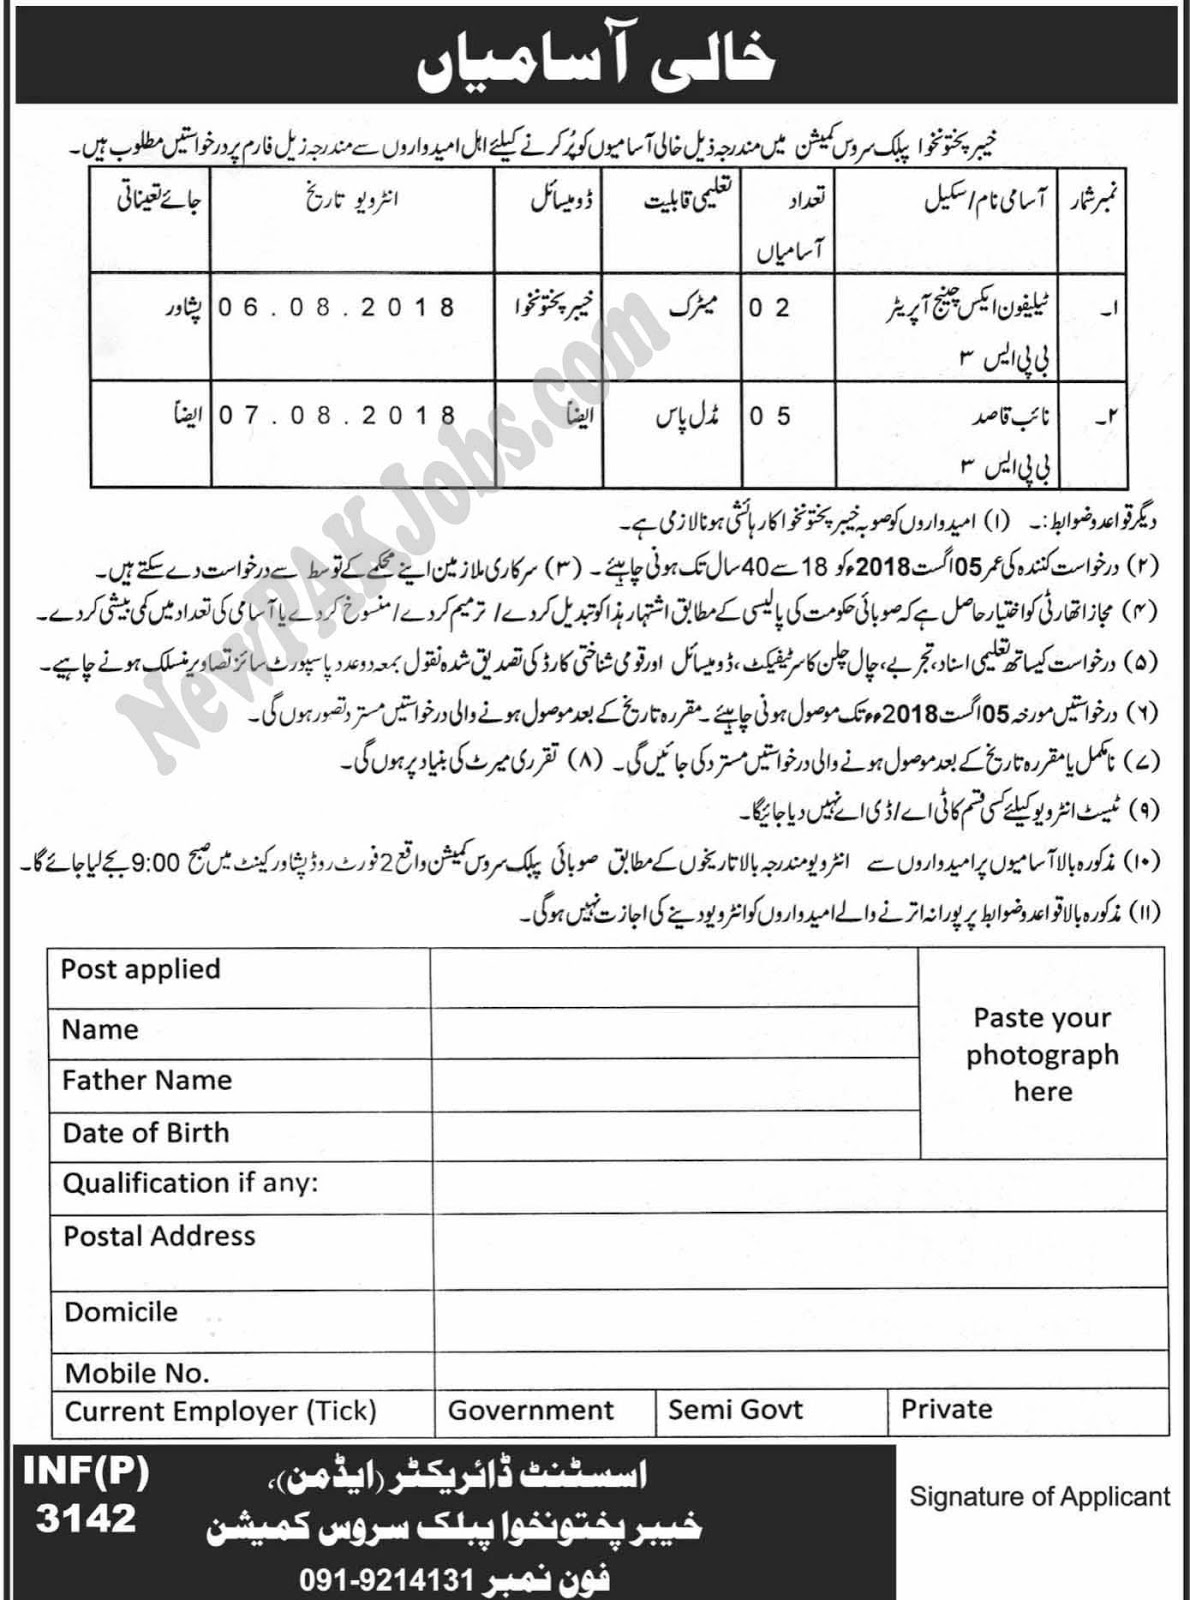 KPPSC Latest Jobs for Telephone Exhange Operator